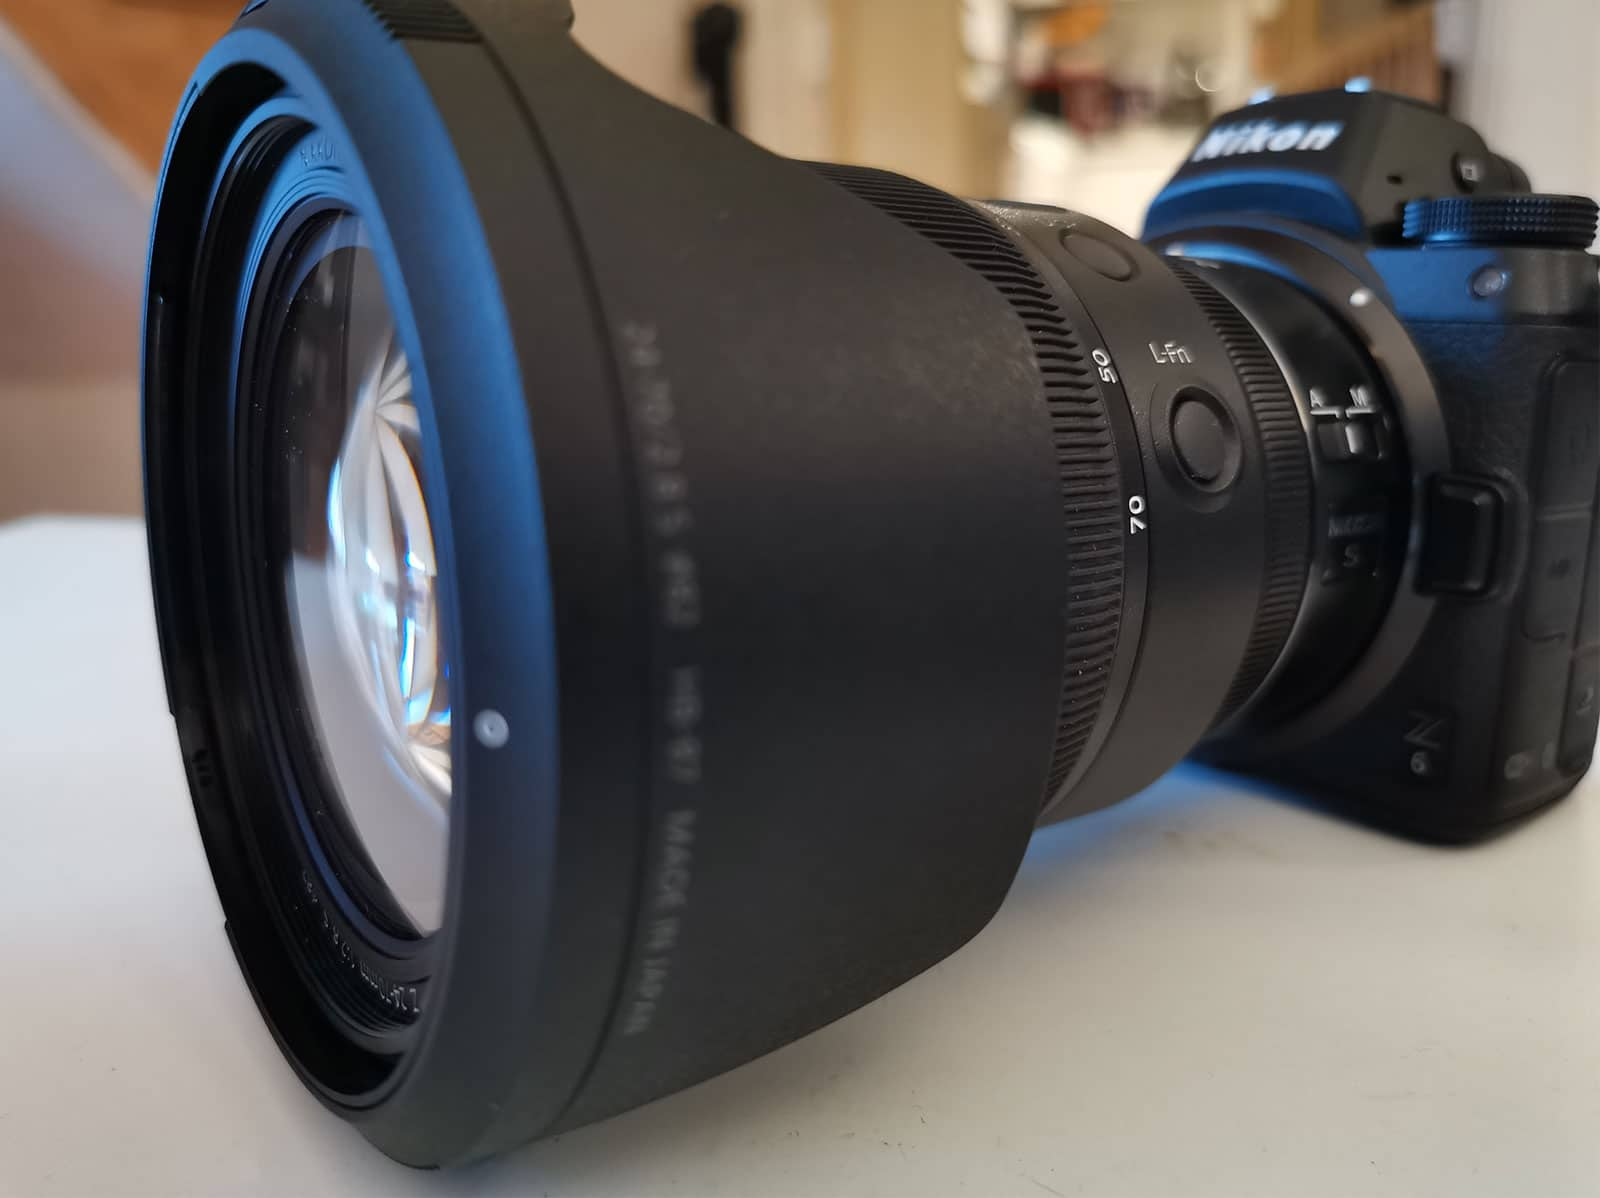 Hands-on with Nikon's OLED-equipped 24-70 F2 8 Z – Pickr